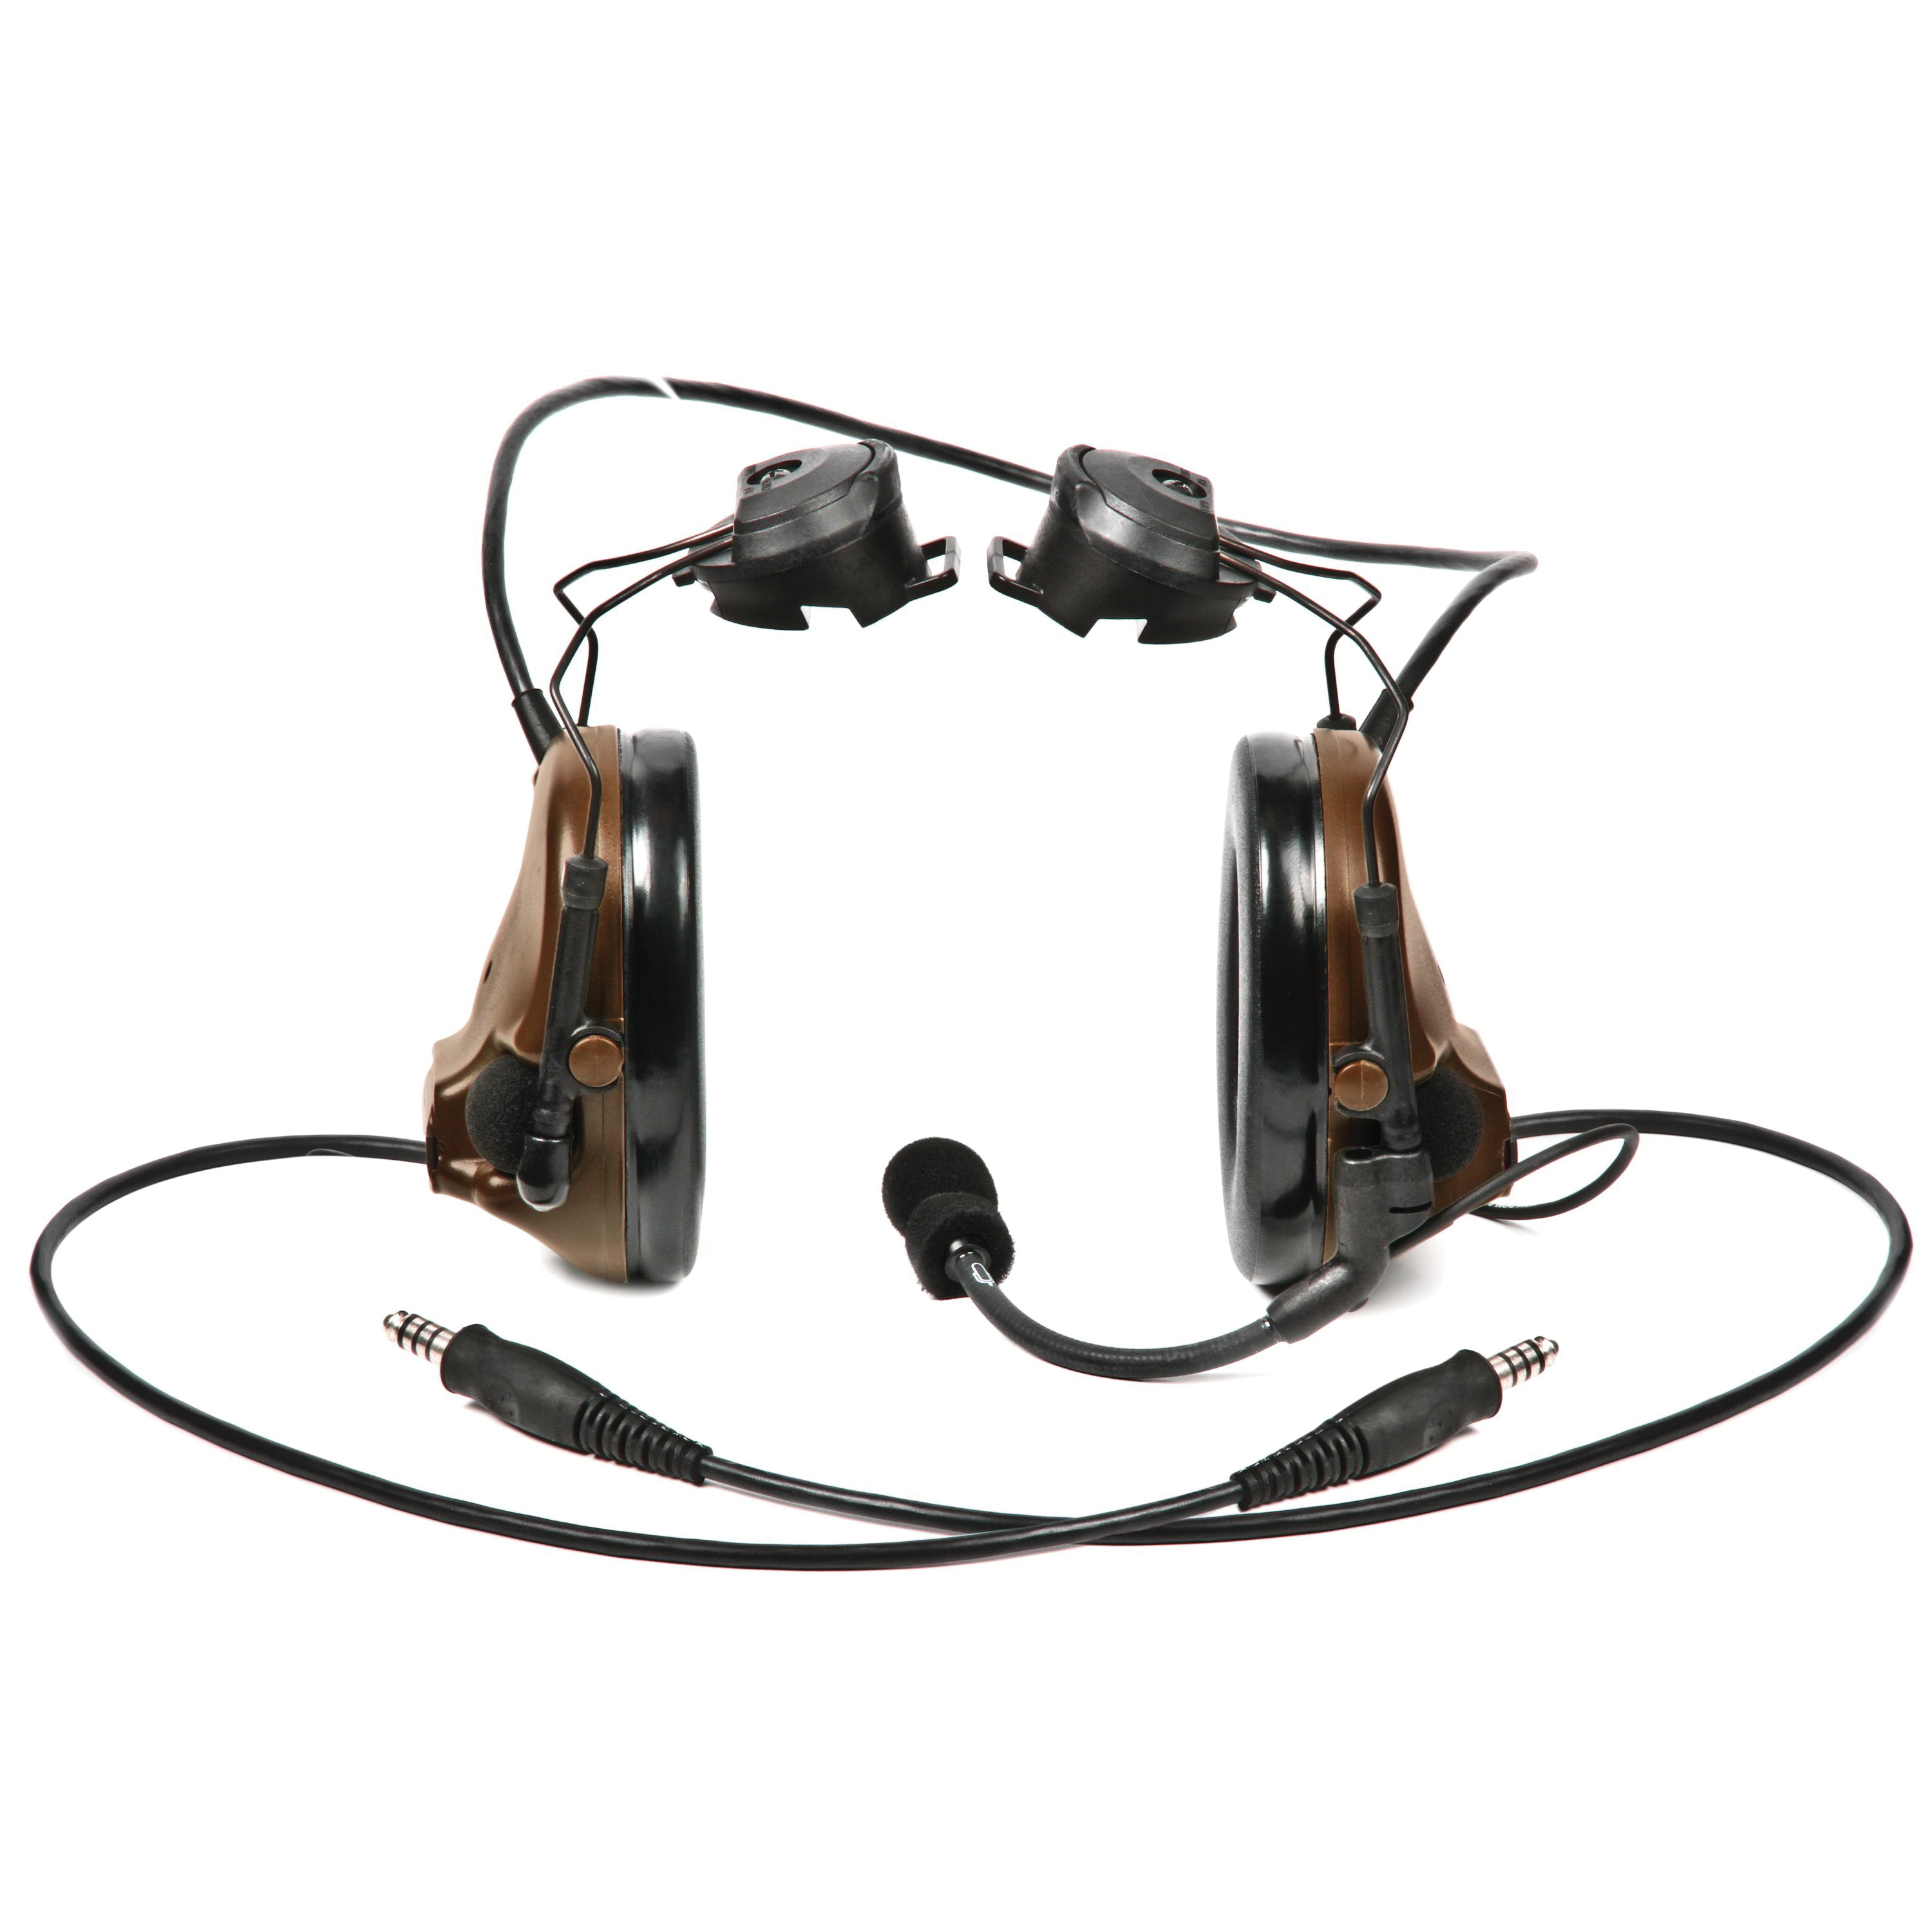 Peltor™ ComTac™ III 093045-93483 MT Series 2-Way Radio Headset With Dynamic Boom Microphone, 22 dB Noise Reduction, For Use With ACH and MICH Helmets, Helmet Mount, Coyote Brown